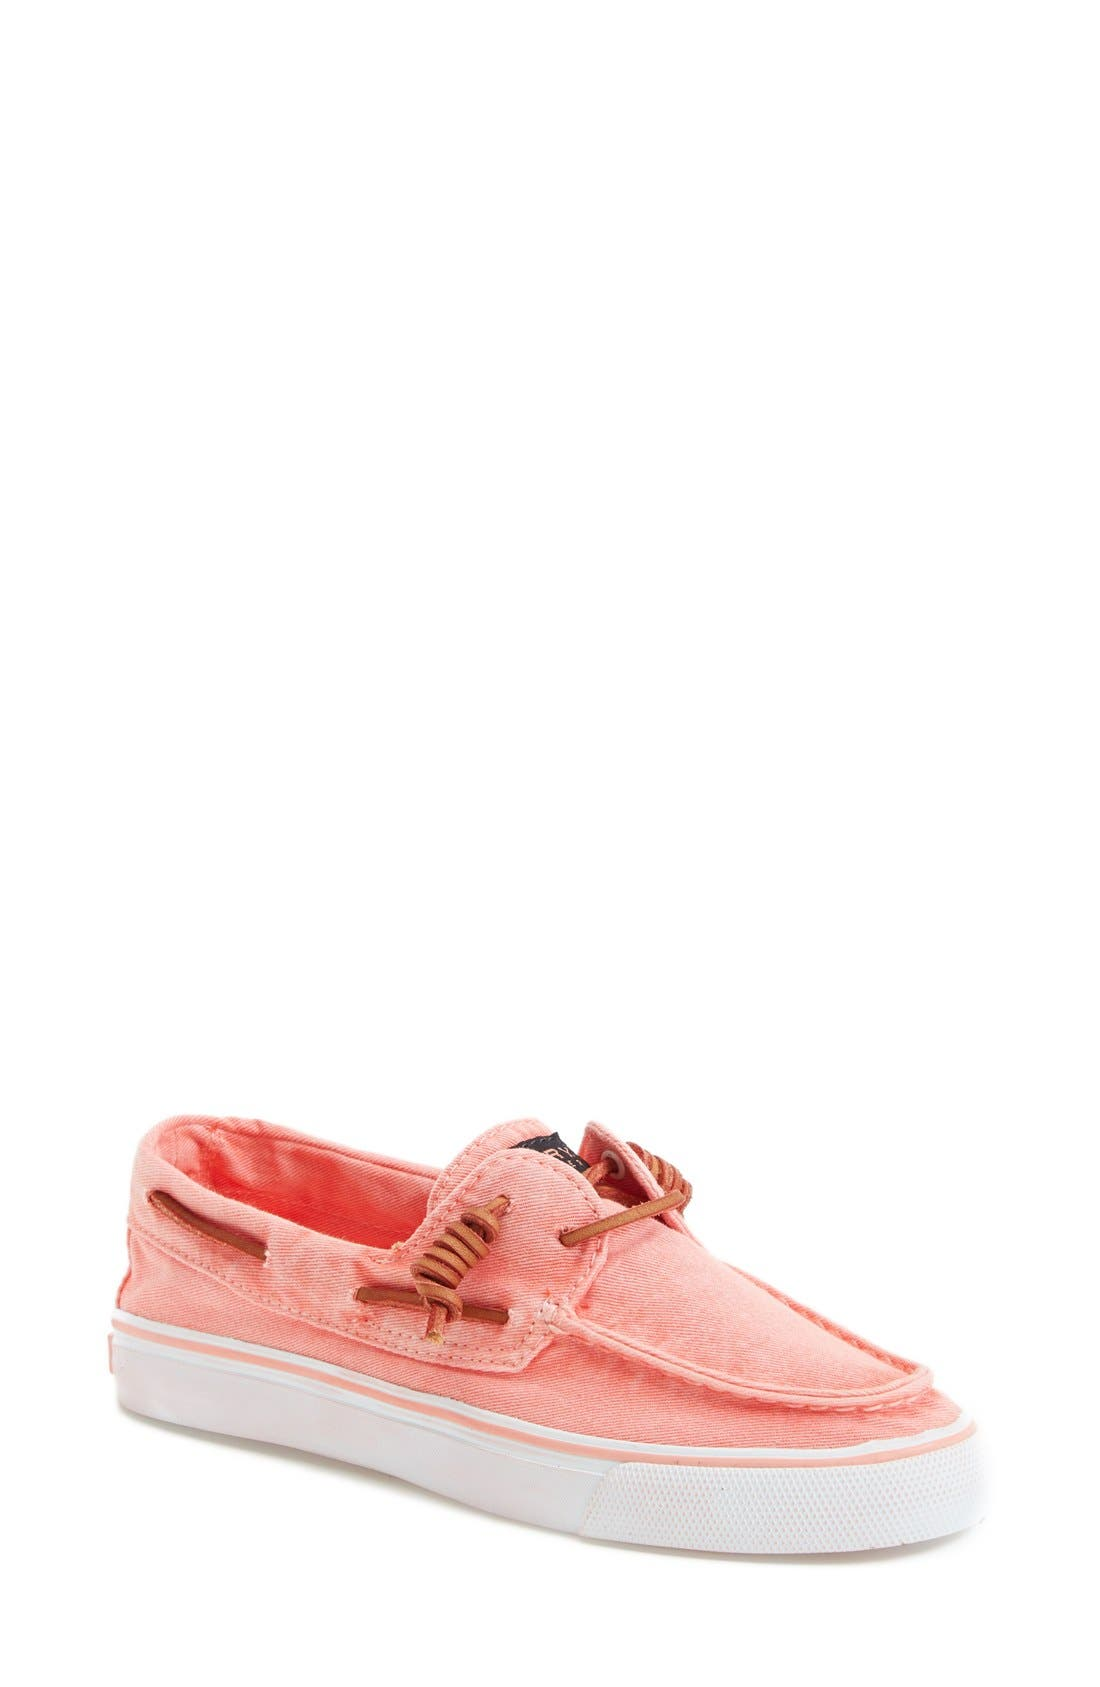 Top-Sider<sup>®</sup> 'Bahama' Sequined Boat Shoe,                             Main thumbnail 42, color,